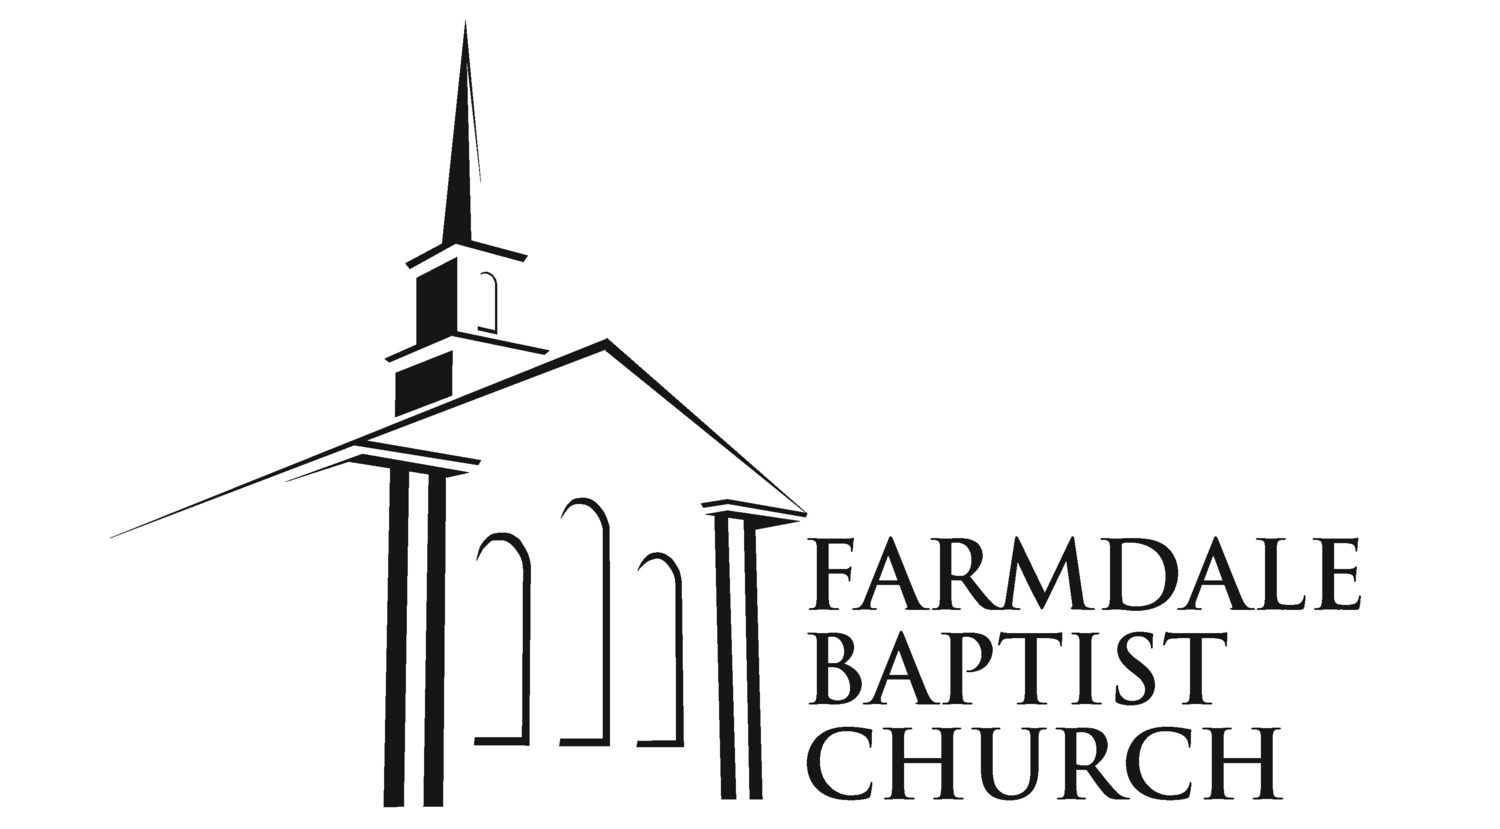 Farmdale Baptist Church of Louisville